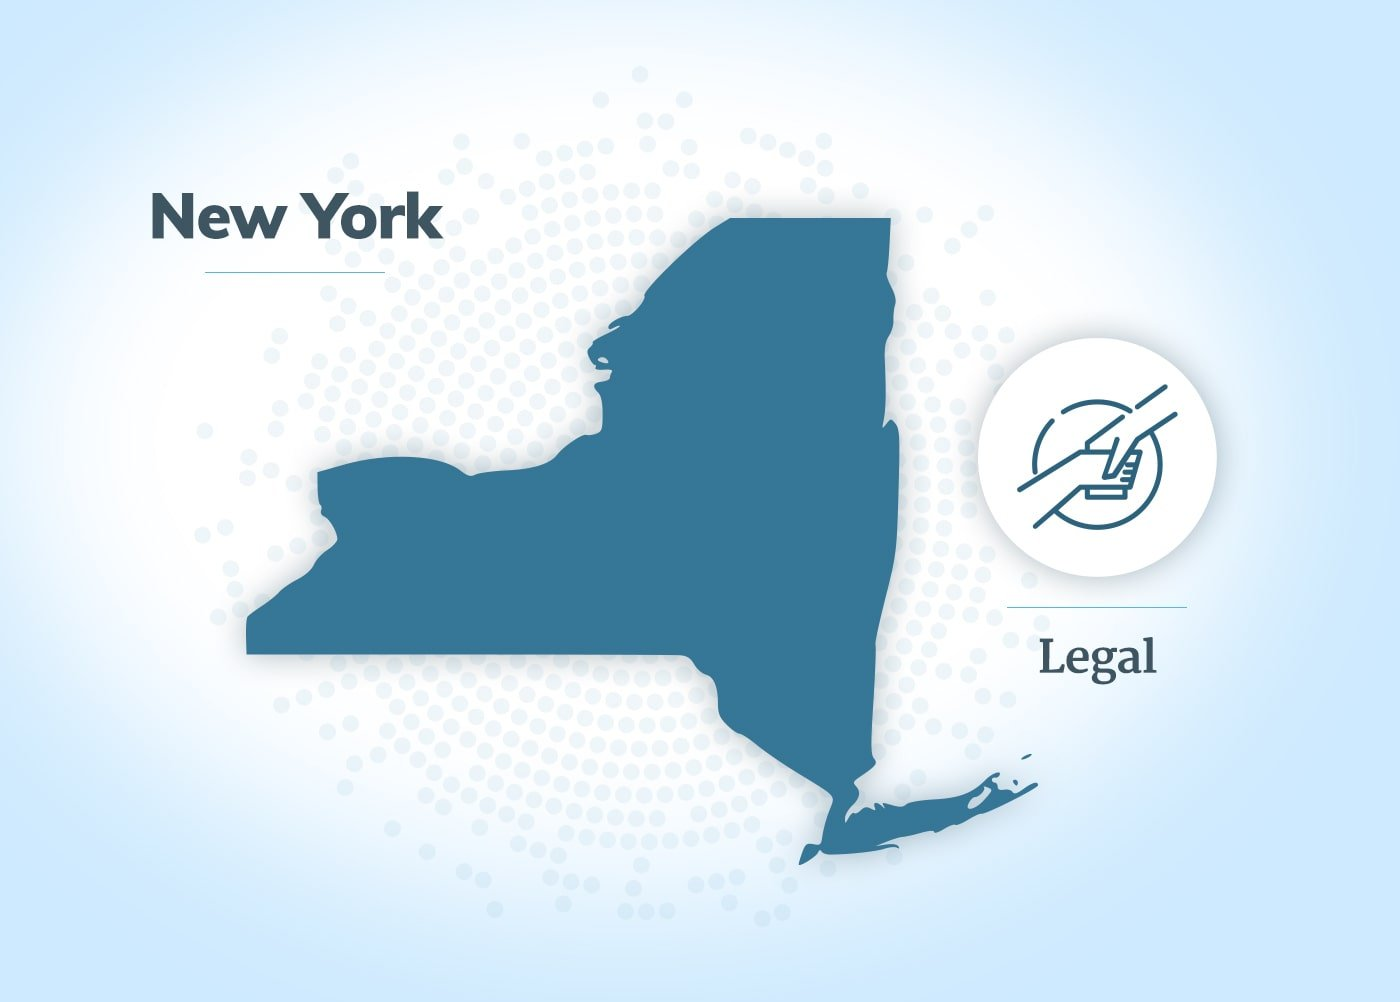 New York Mesothelioma Lawyers Law Firms Lawsuits And Settlements